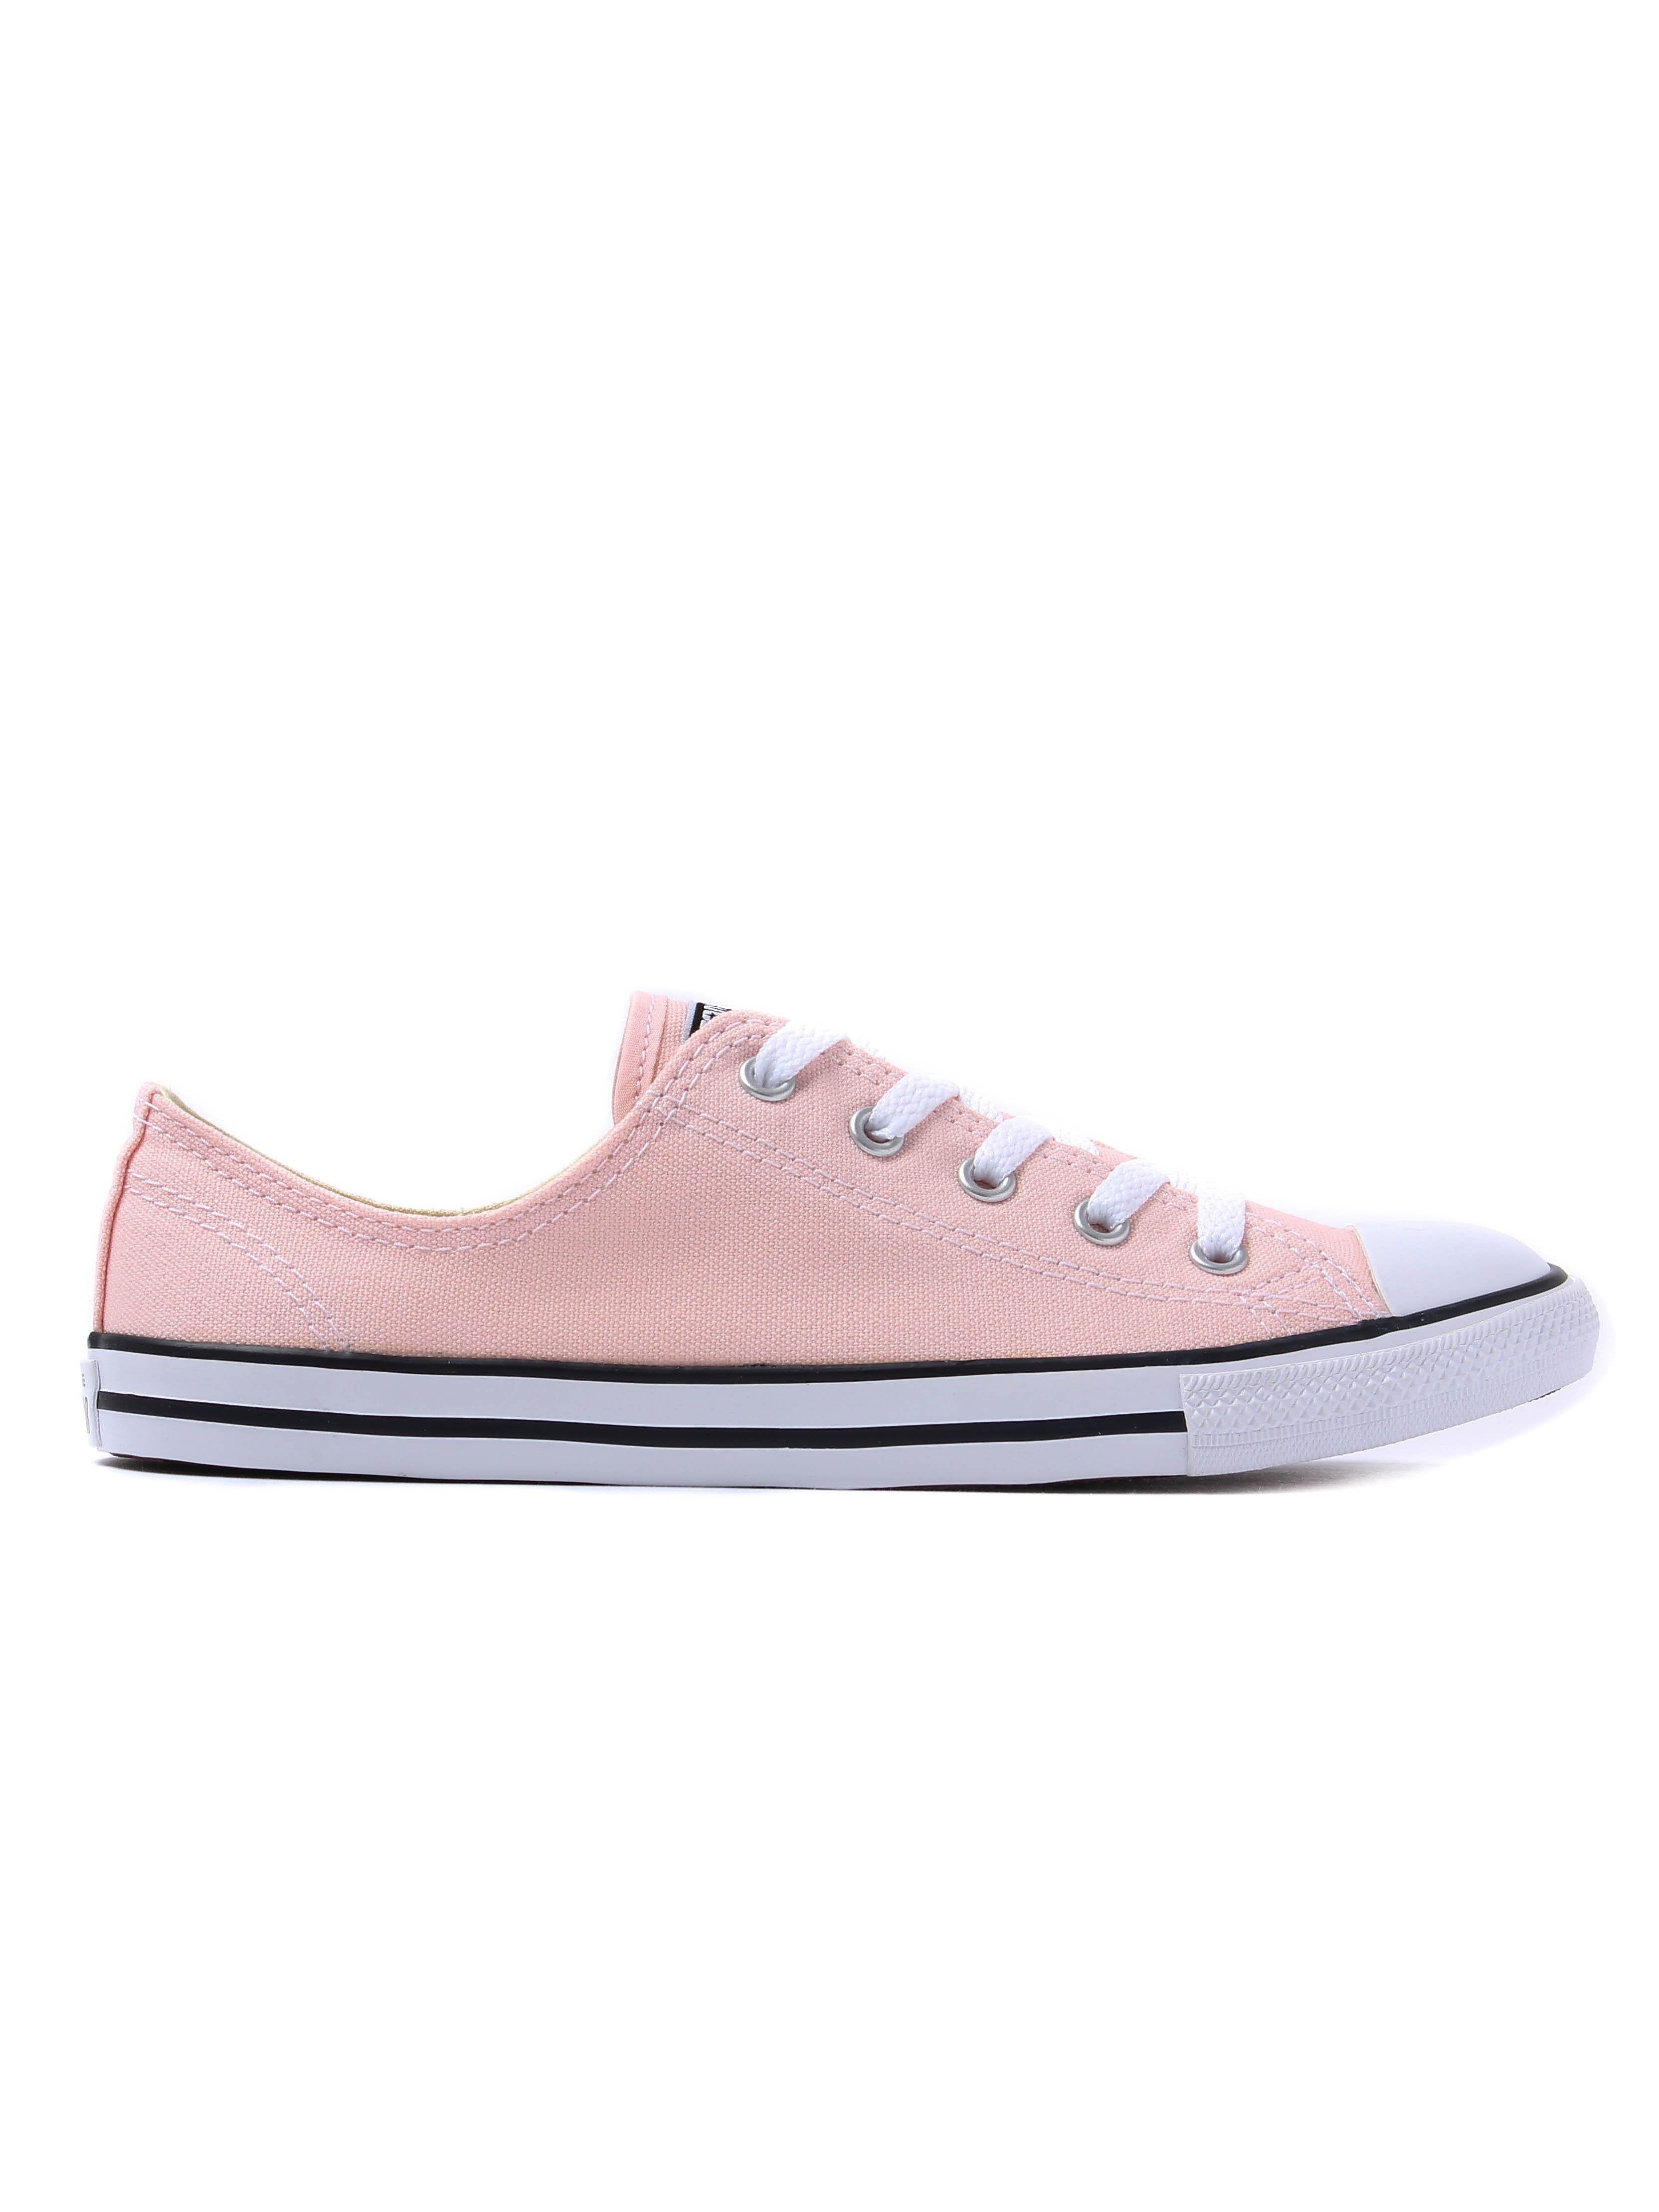 Converse Women's Chuck Taylor All Star Dainty OX Canvas Trainers - Vapor Pink